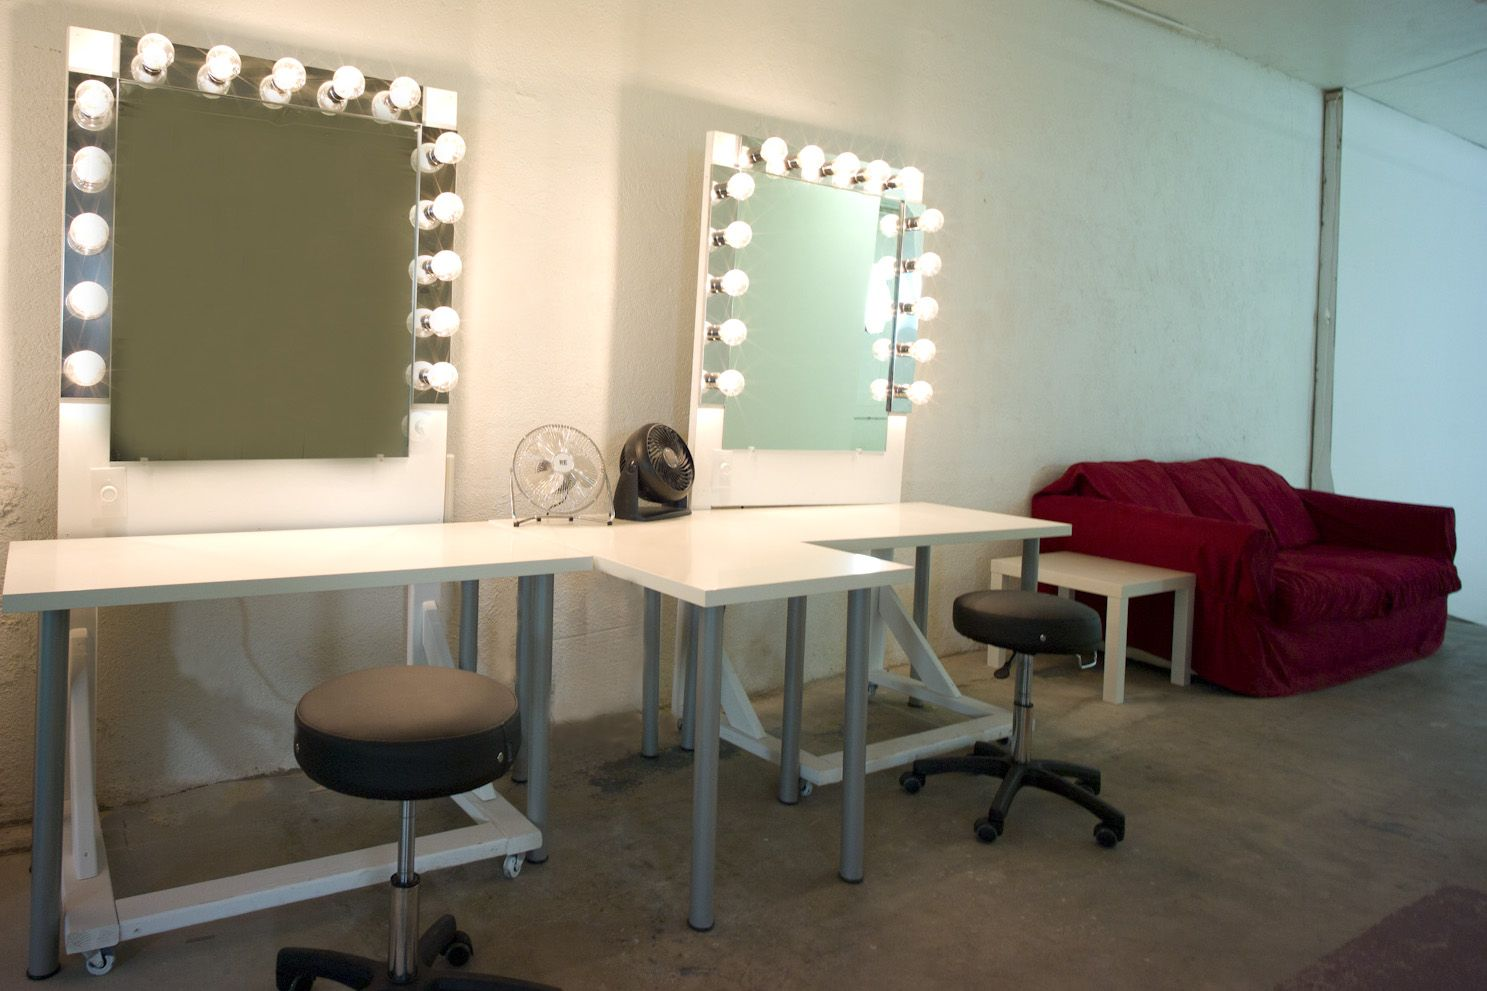 Makeup station & Makeup station | MAKEUP! | Pinterest | Salons Hair stations and ... azcodes.com